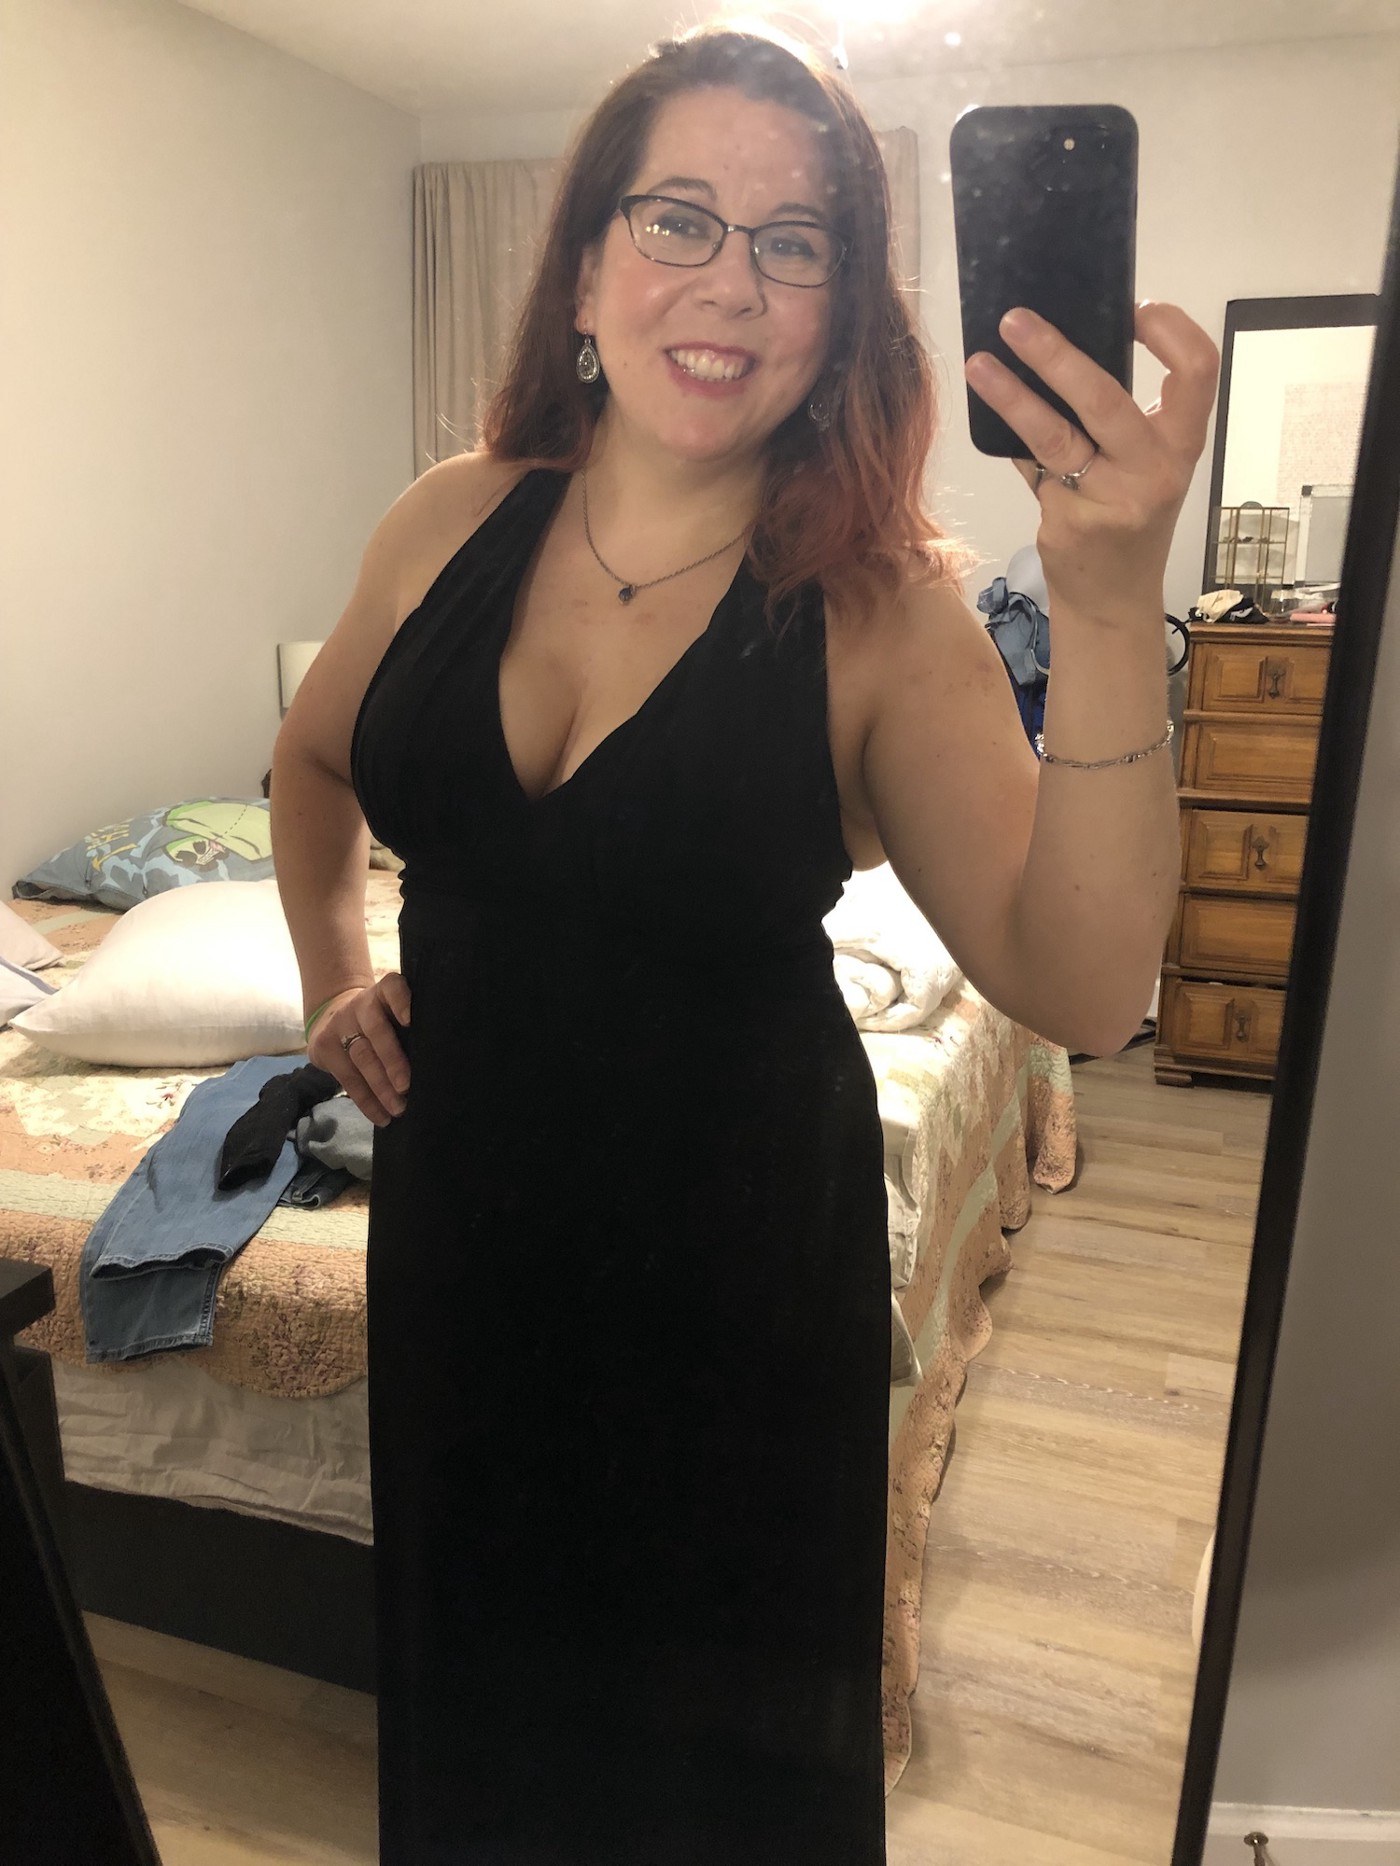 The author, dressed in a black, floor length, v neck dress, with one hand on her hip taking a mirror selfie, and not realizing that there is a pair of jeans on the bed. She is smiling and proud of her 100 Burpee accomplishment that day.